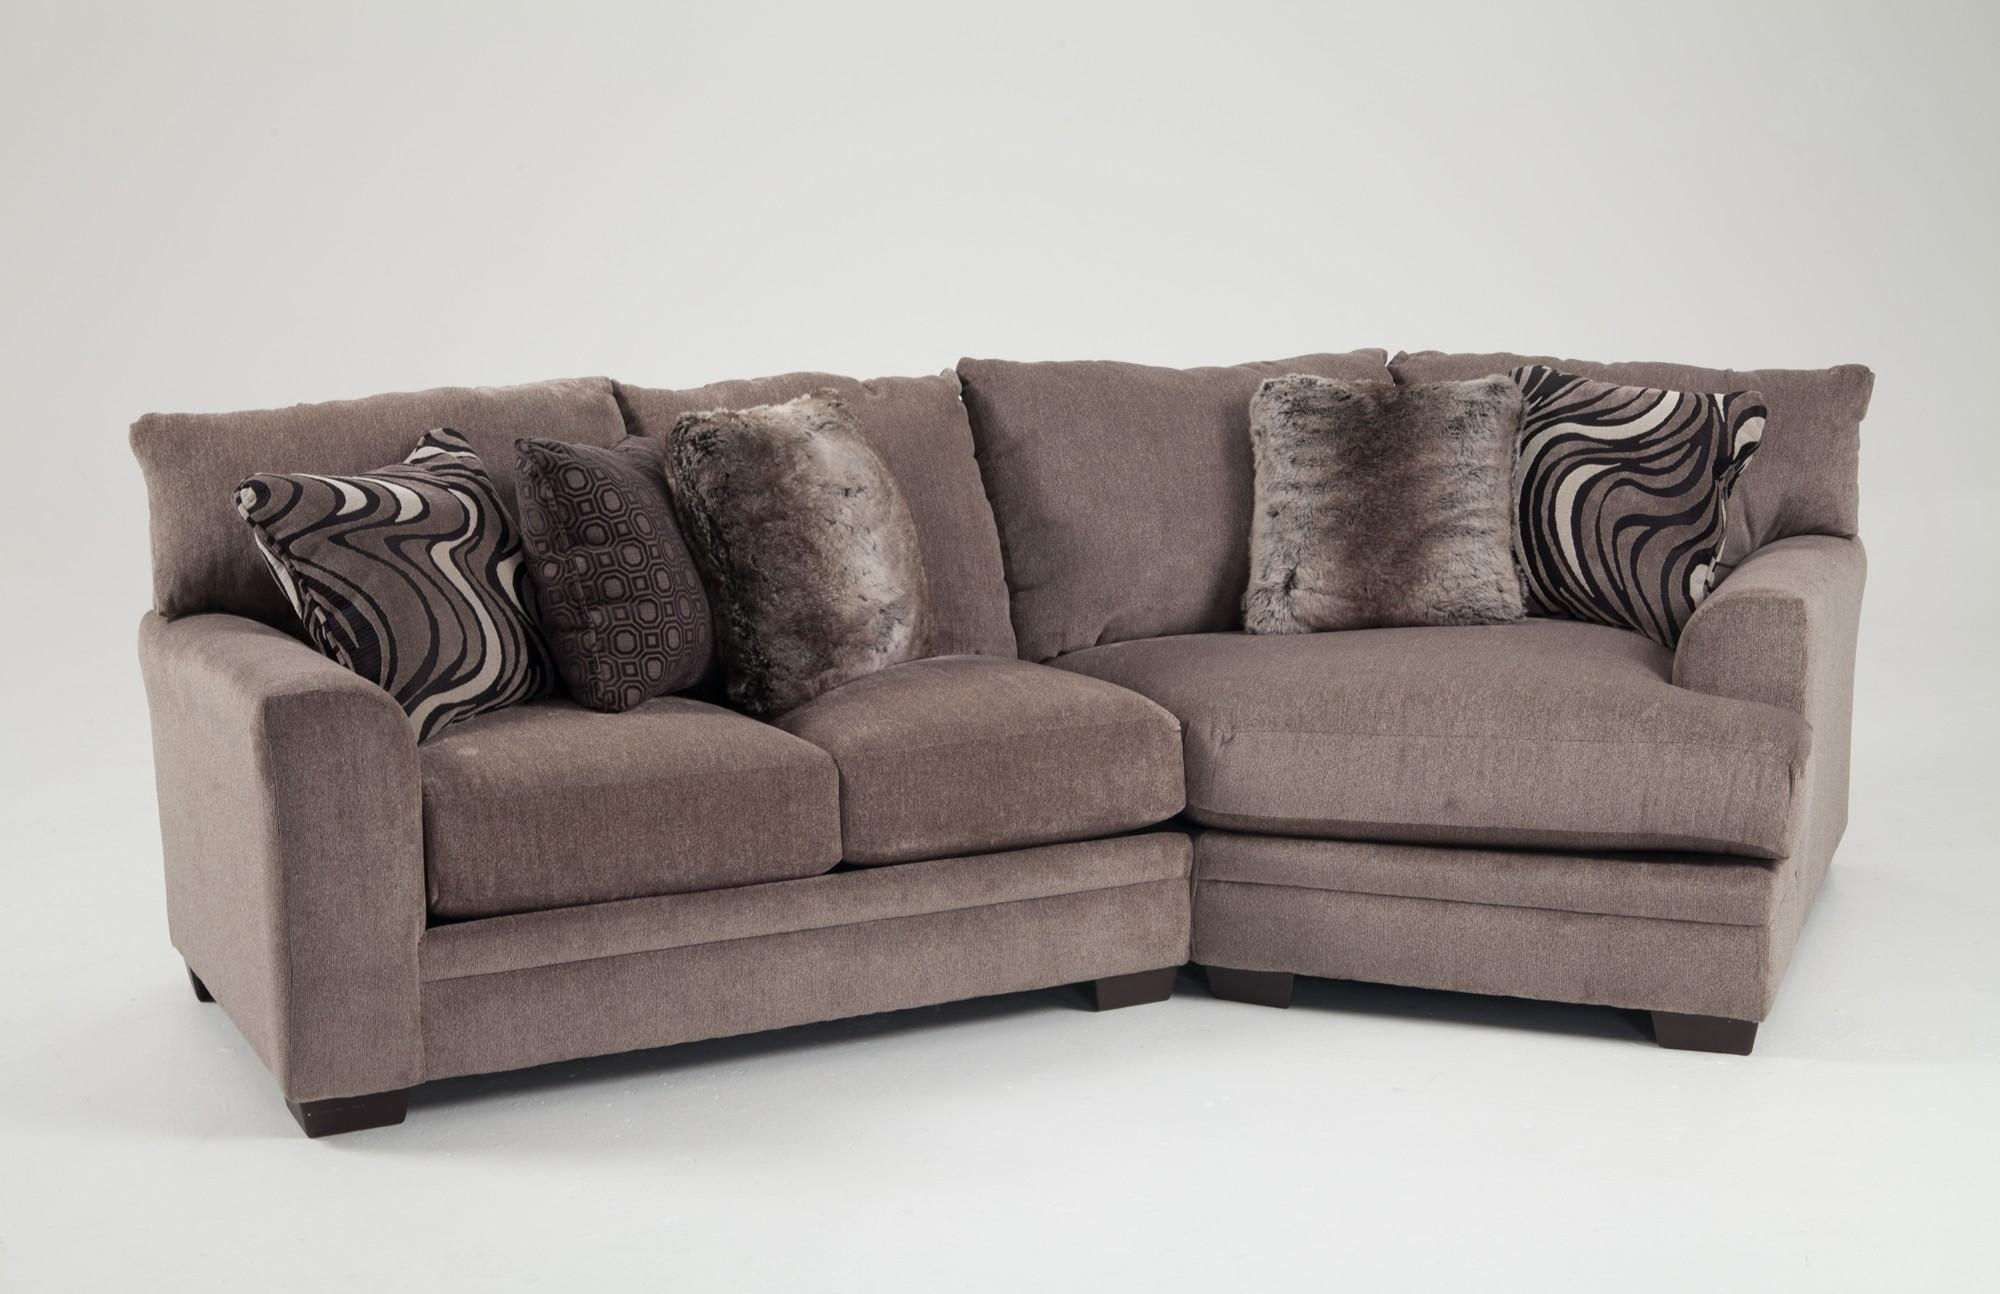 Luxe 2 Piece Sectional With Cuddler | Bob's Discount Furniture Pertaining To Sectional Cuddler (Image 13 of 20)